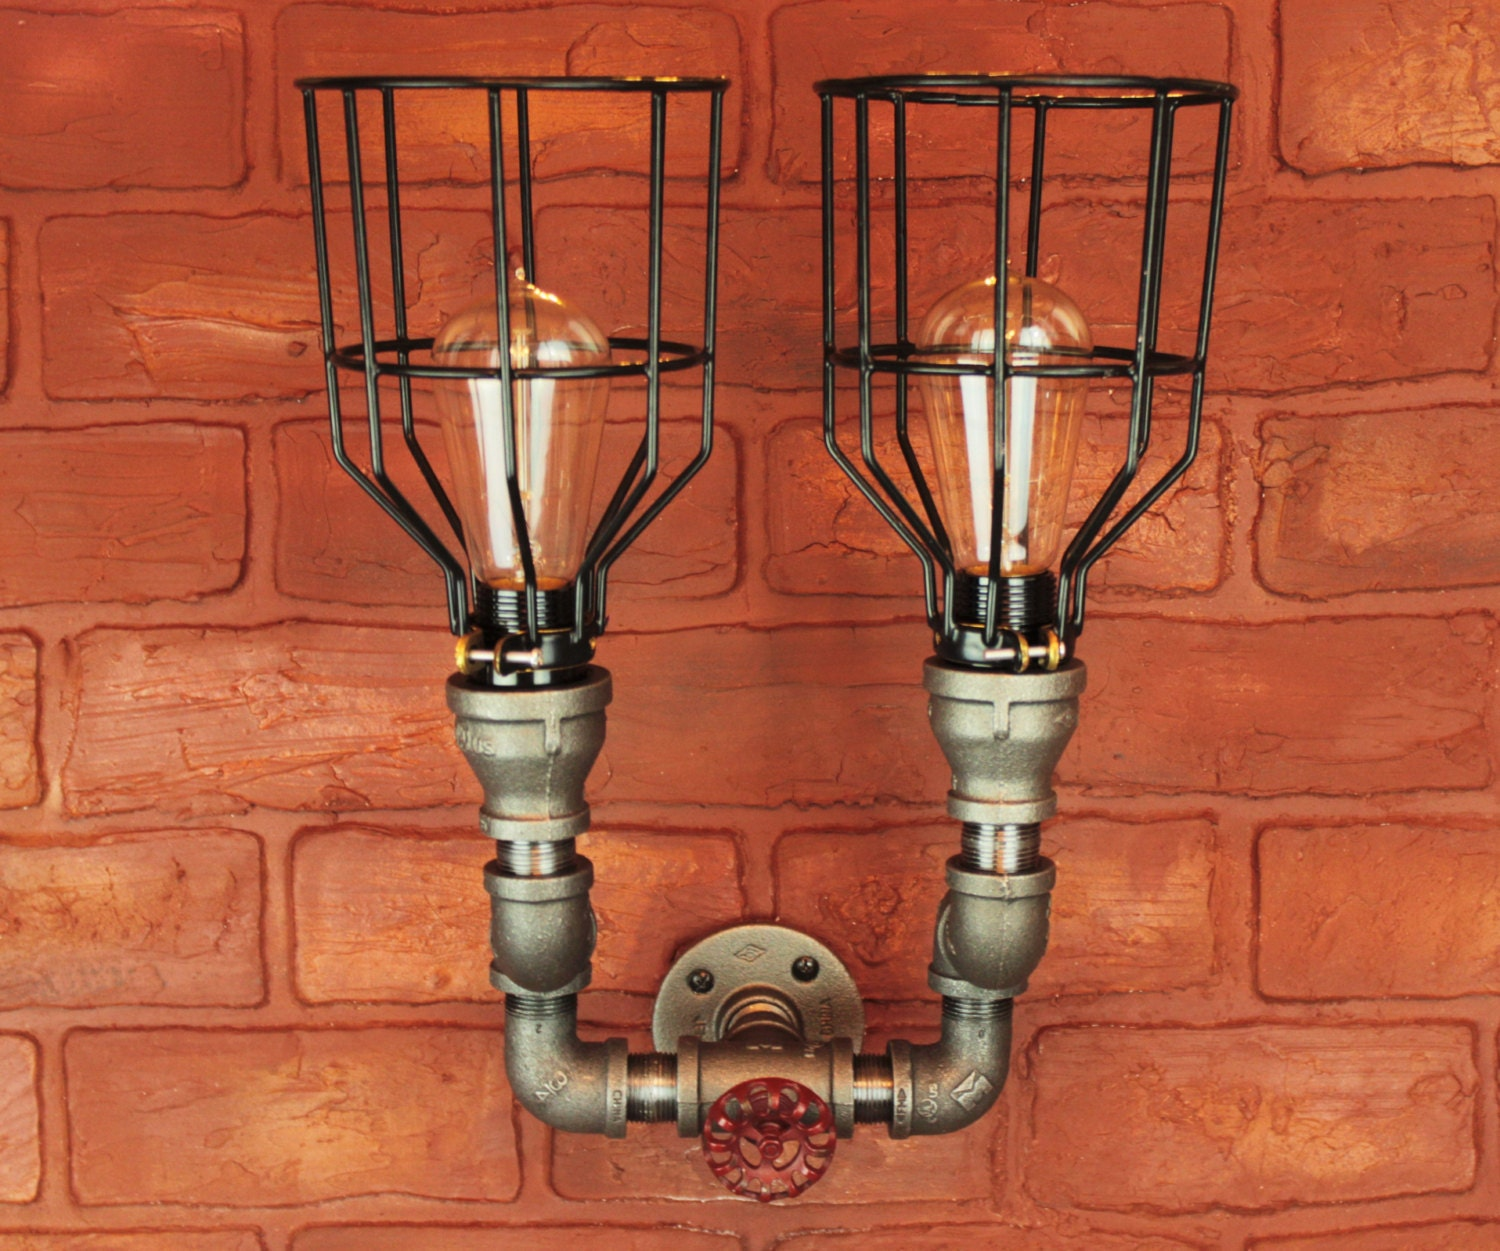 Wall Sconce Light Fixture Pipe Lighting W Cages By Hanormanor